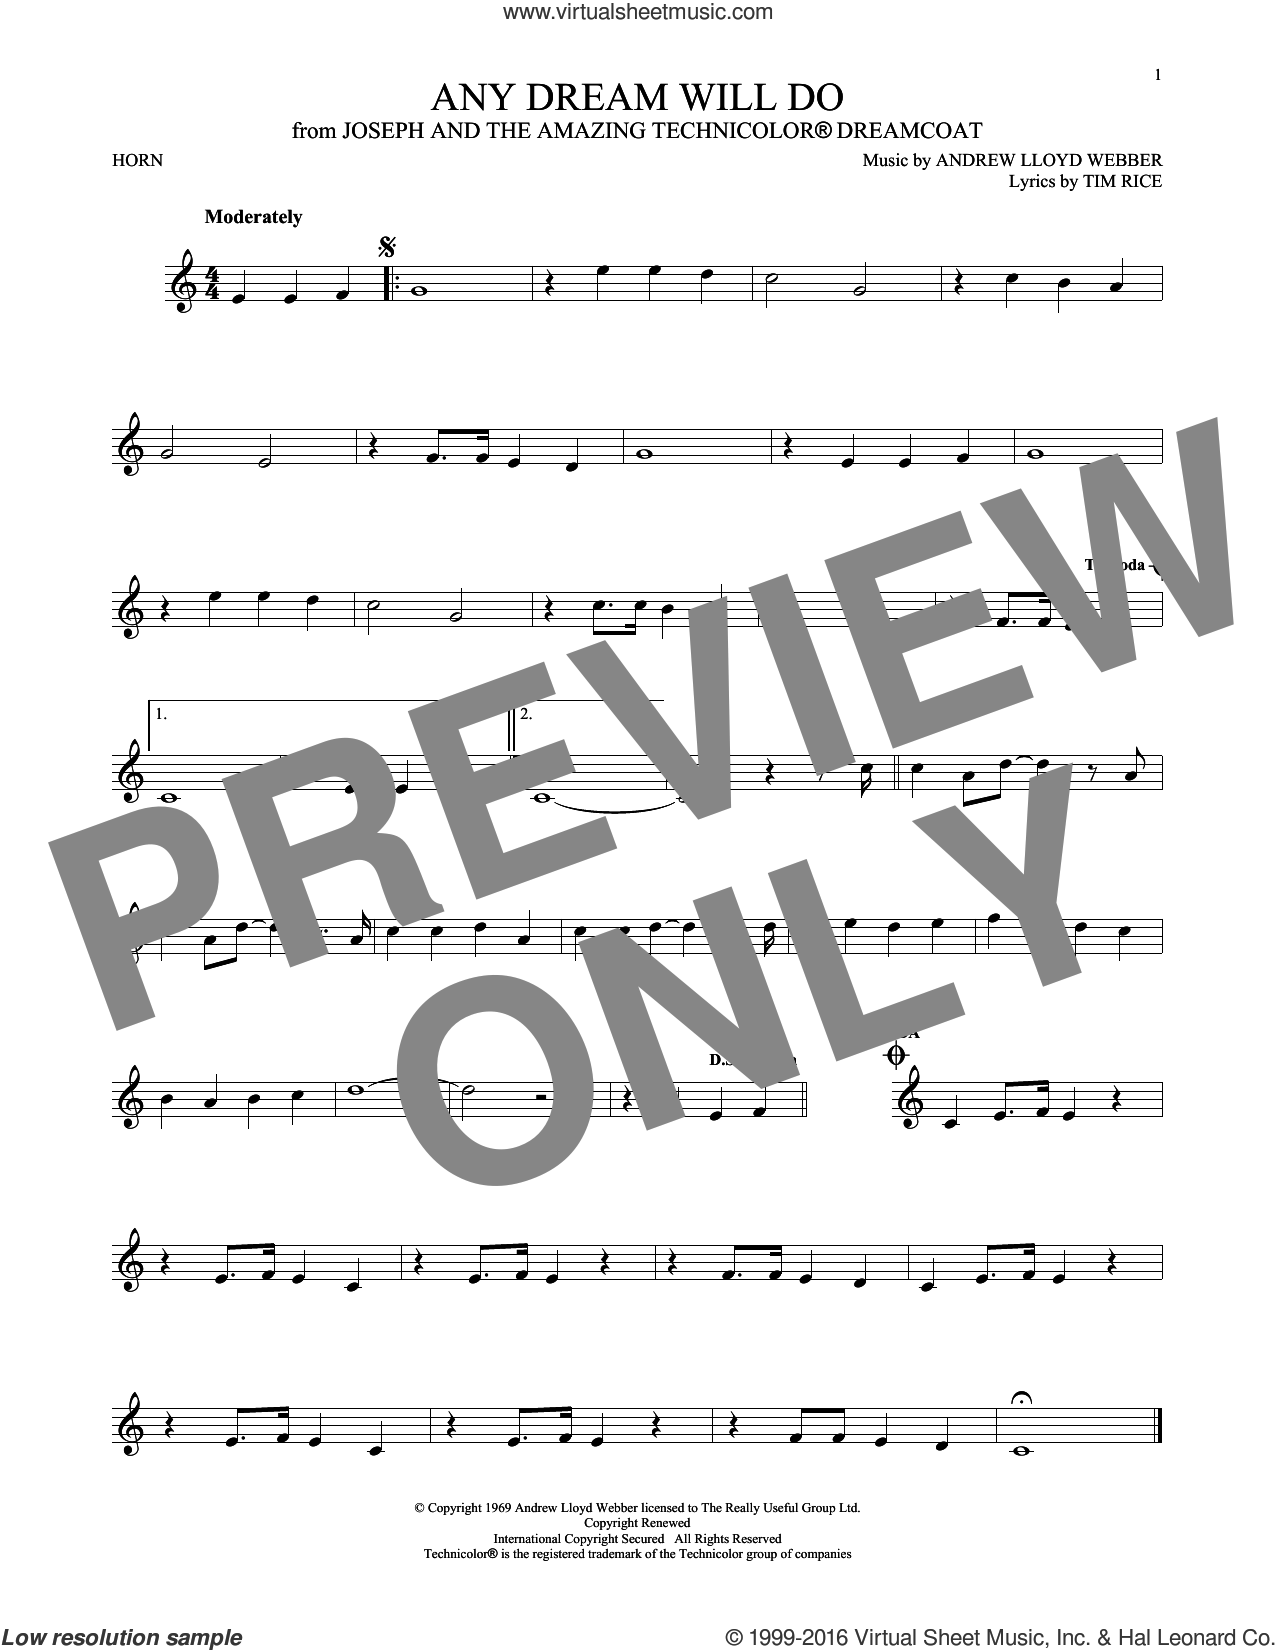 Any Dream Will Do (from Joseph and the Amazing Technicolor Dreamcoat) sheet music for horn solo by Andrew Lloyd Webber, Andrew Lloyd Webber & Tim Rice and Tim Rice, intermediate skill level